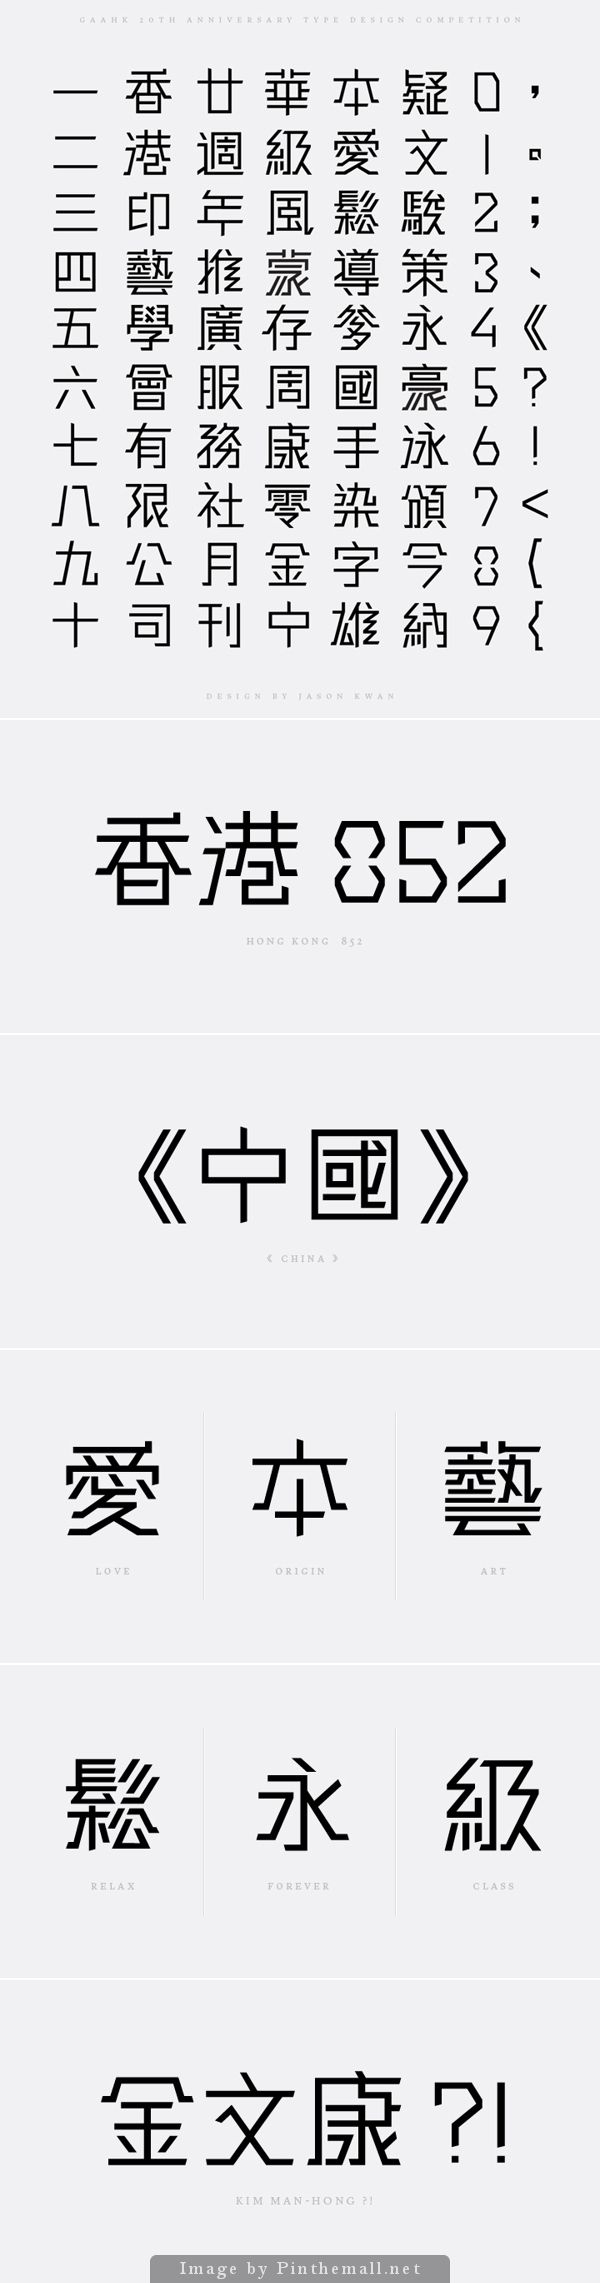 GAAHK Typeface Design by JKWAN DESIGN, via Behance